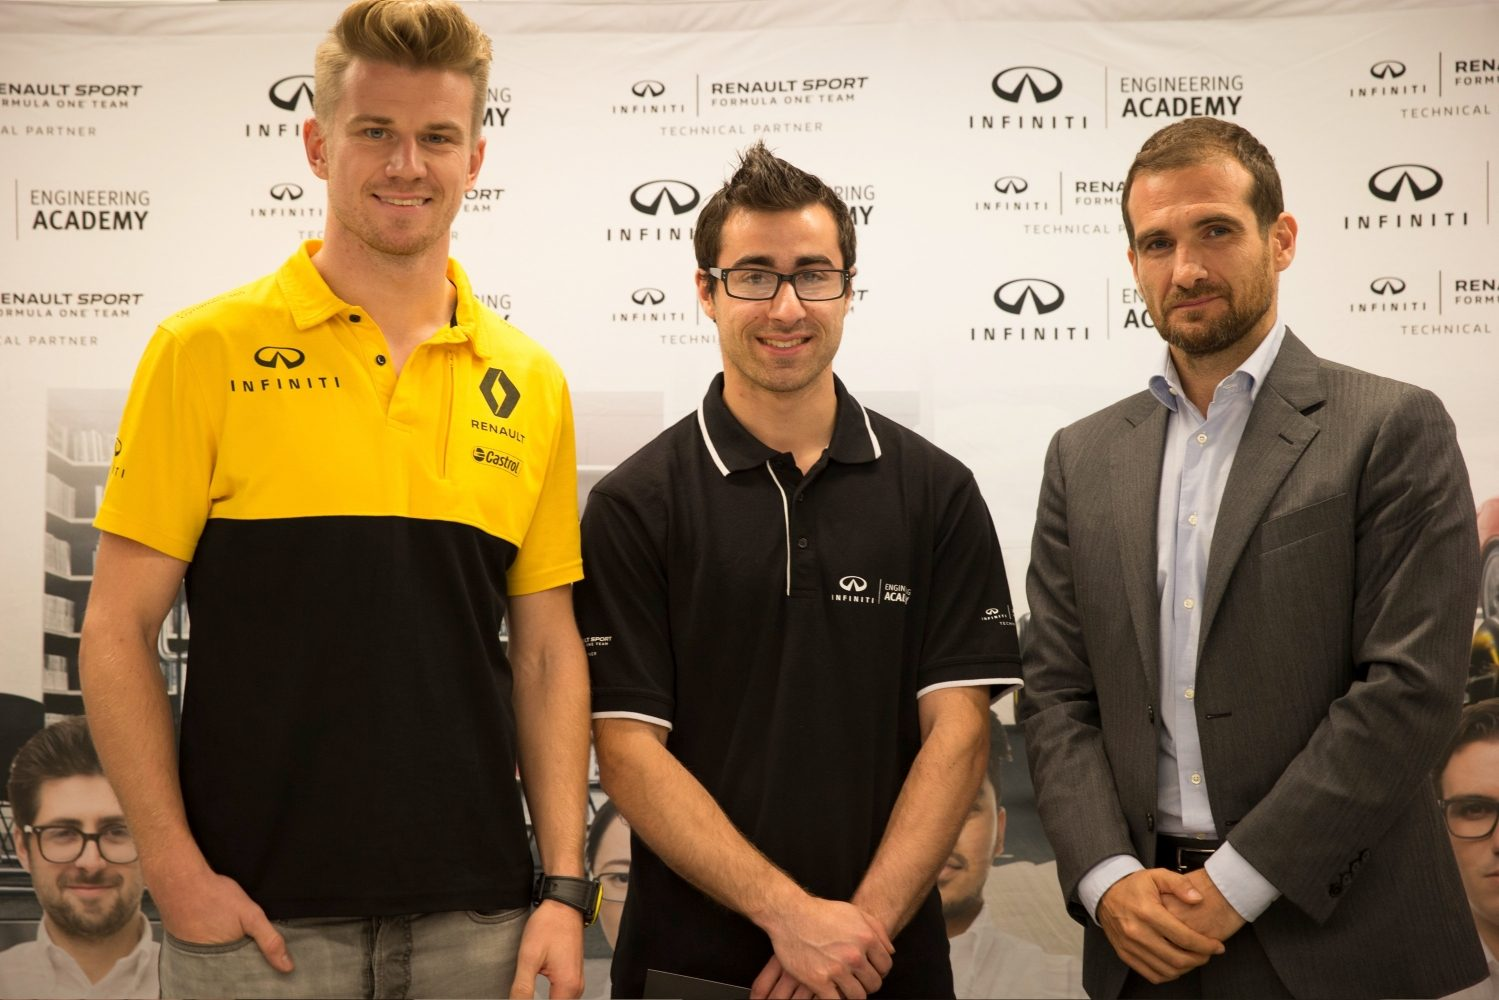 Jacob Debono awarded a unique one- year placement to work with both INFINITI and Renault Sport Formula One™ Team.